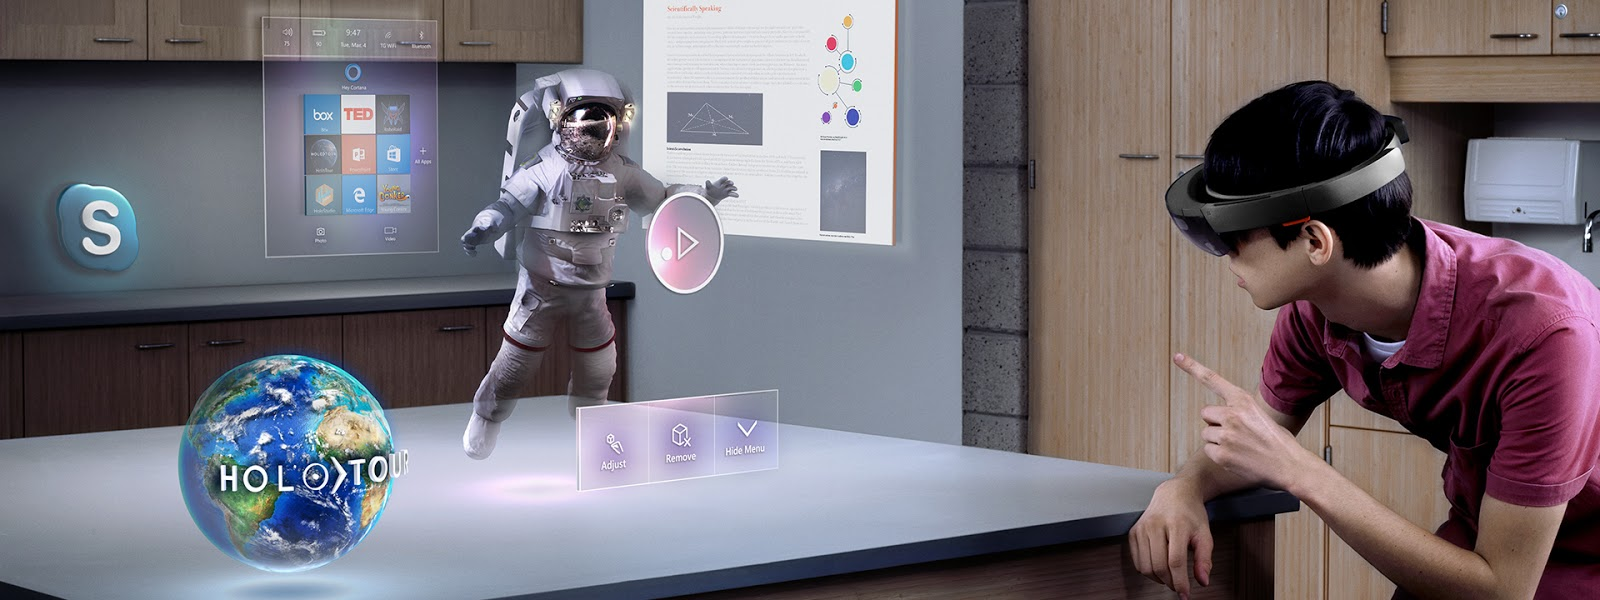 Microsoft-HoloLens-Mixed-Reality